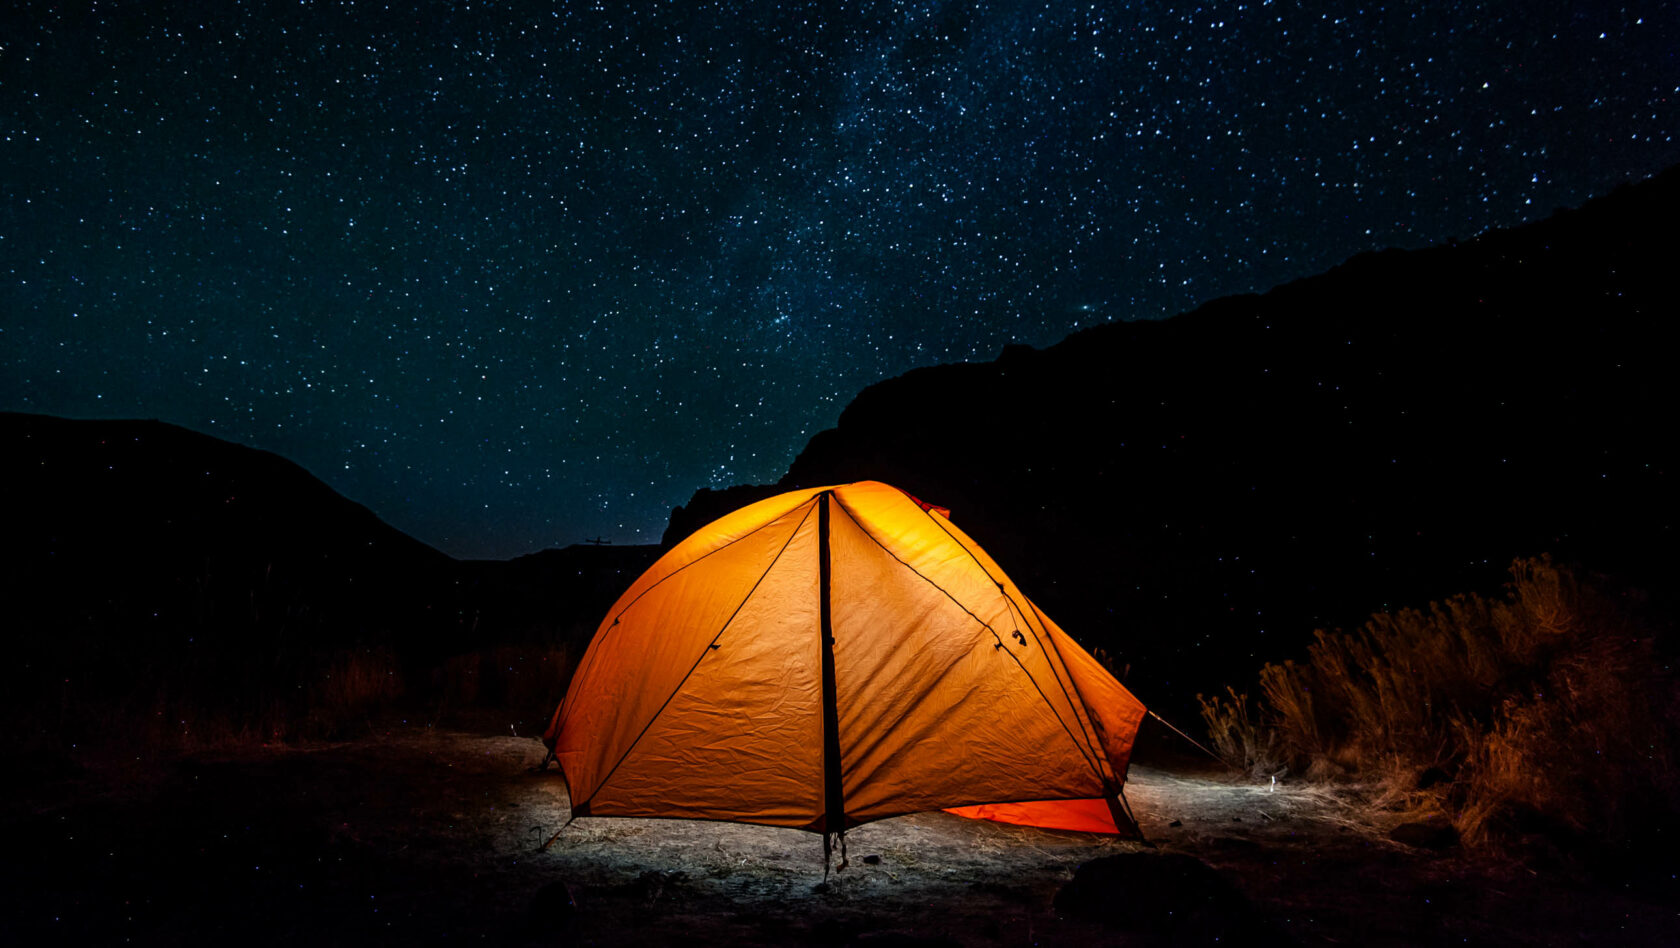 Tent under a stary sky